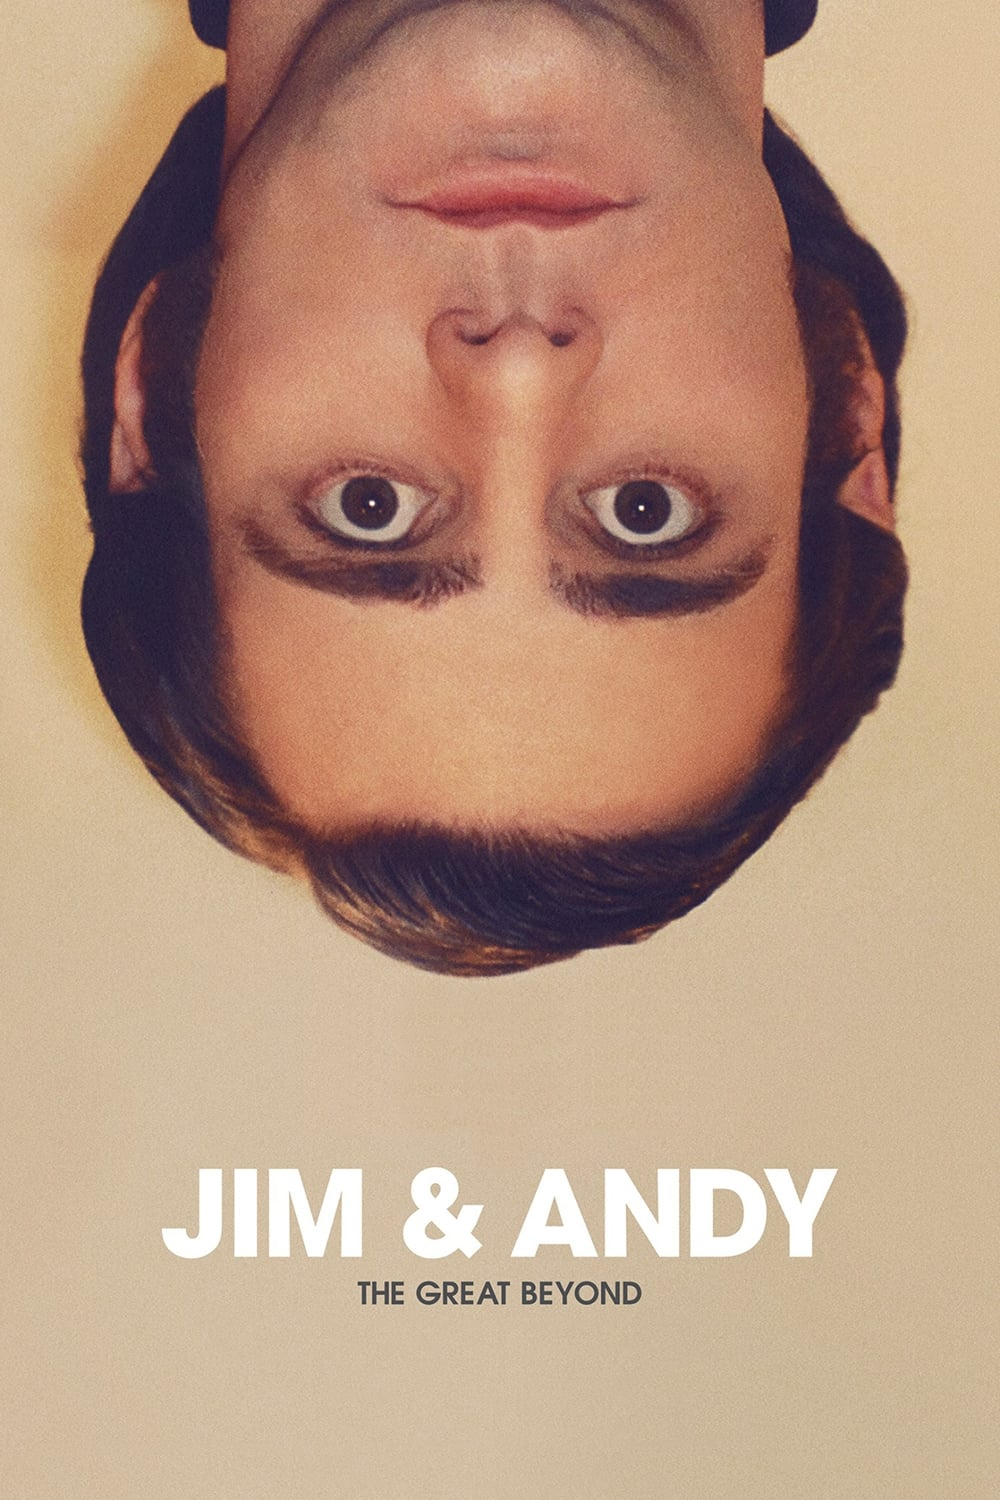 Image Jim & Andy: The Great Beyond - Featuring a Very Special, Contractually Obligated Mention of Tony Clifton